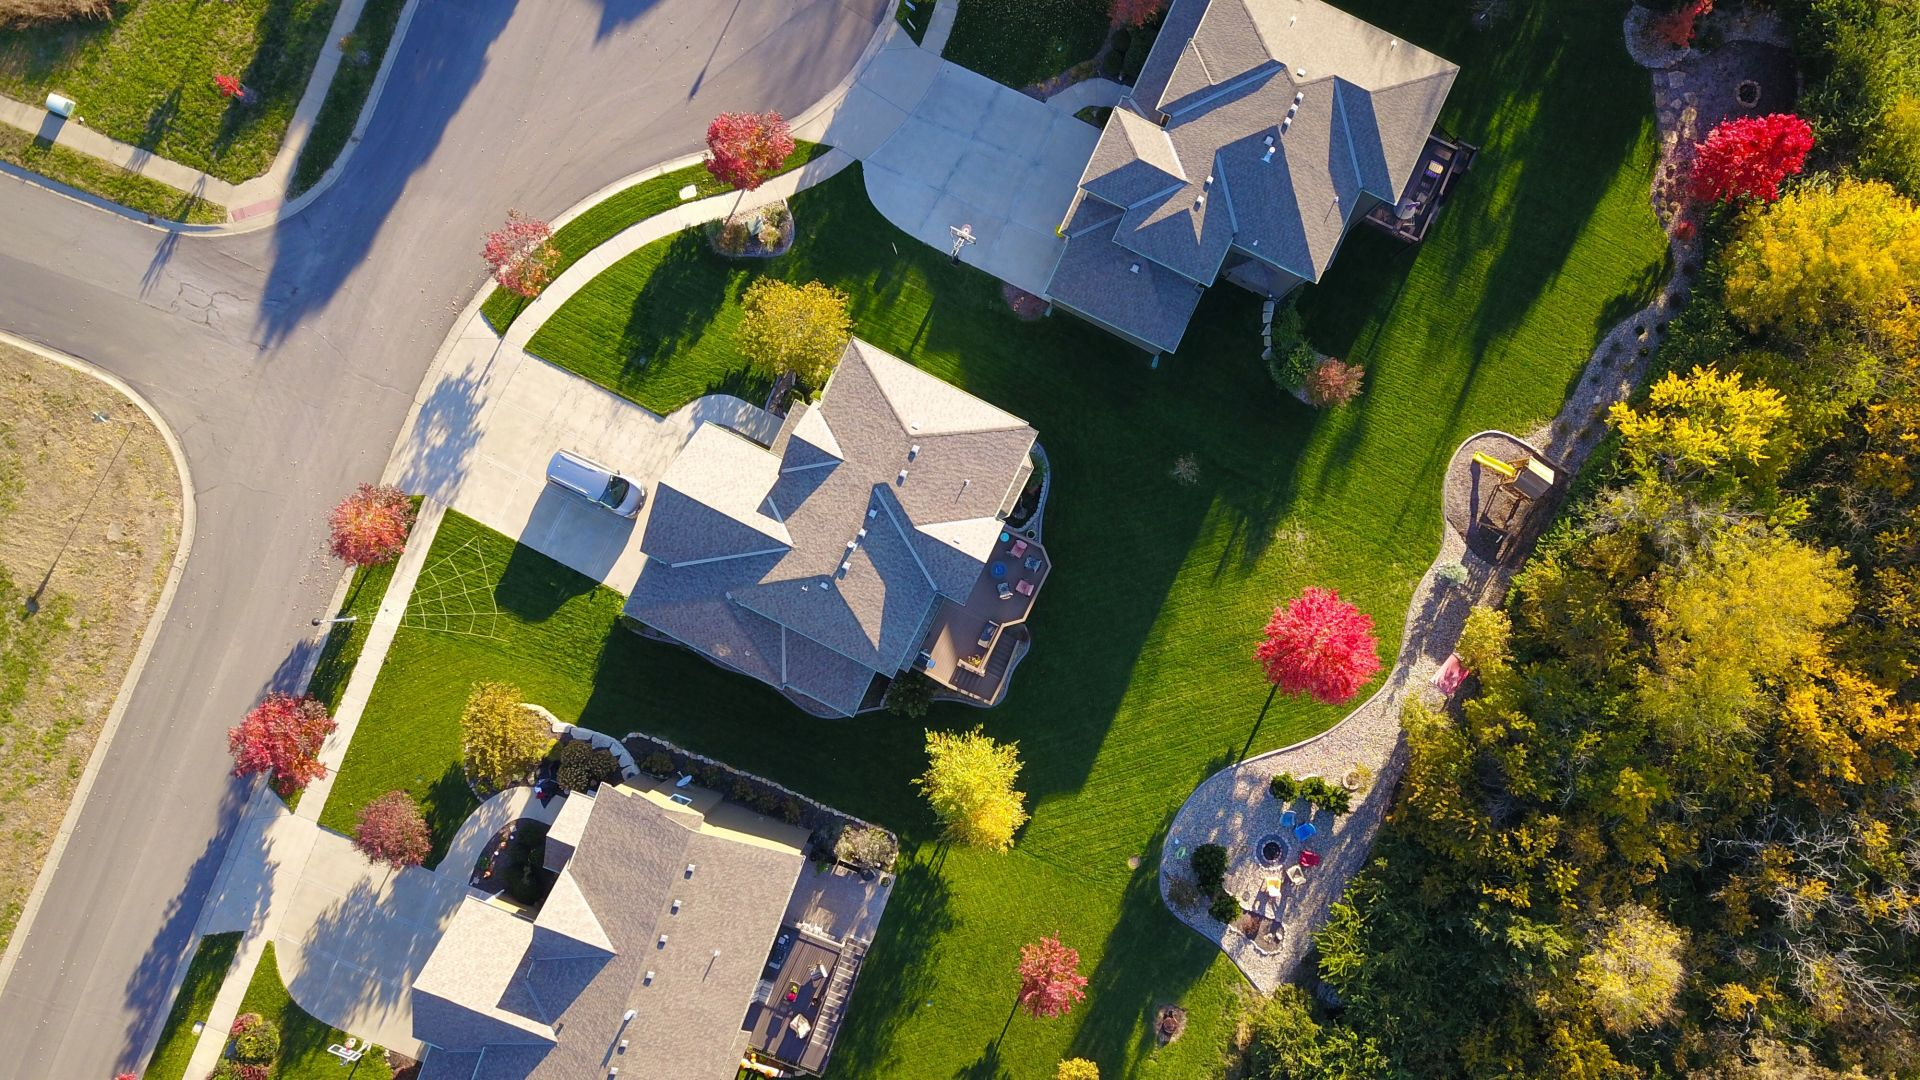 Applications of Aerial Photography